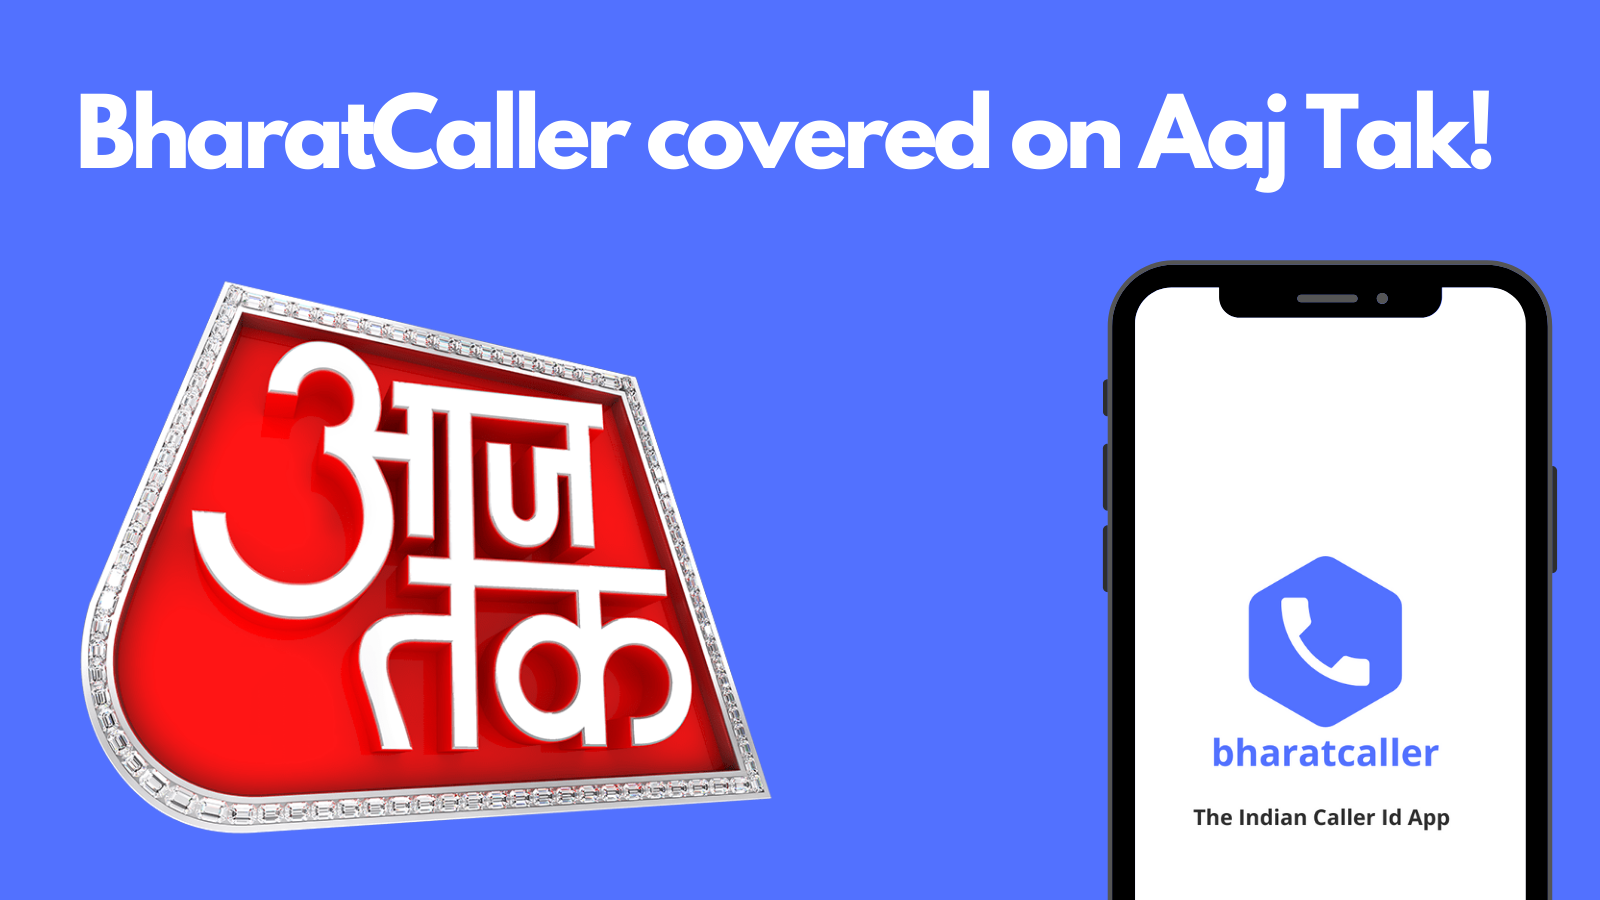 BharatCaller covered by AajTak